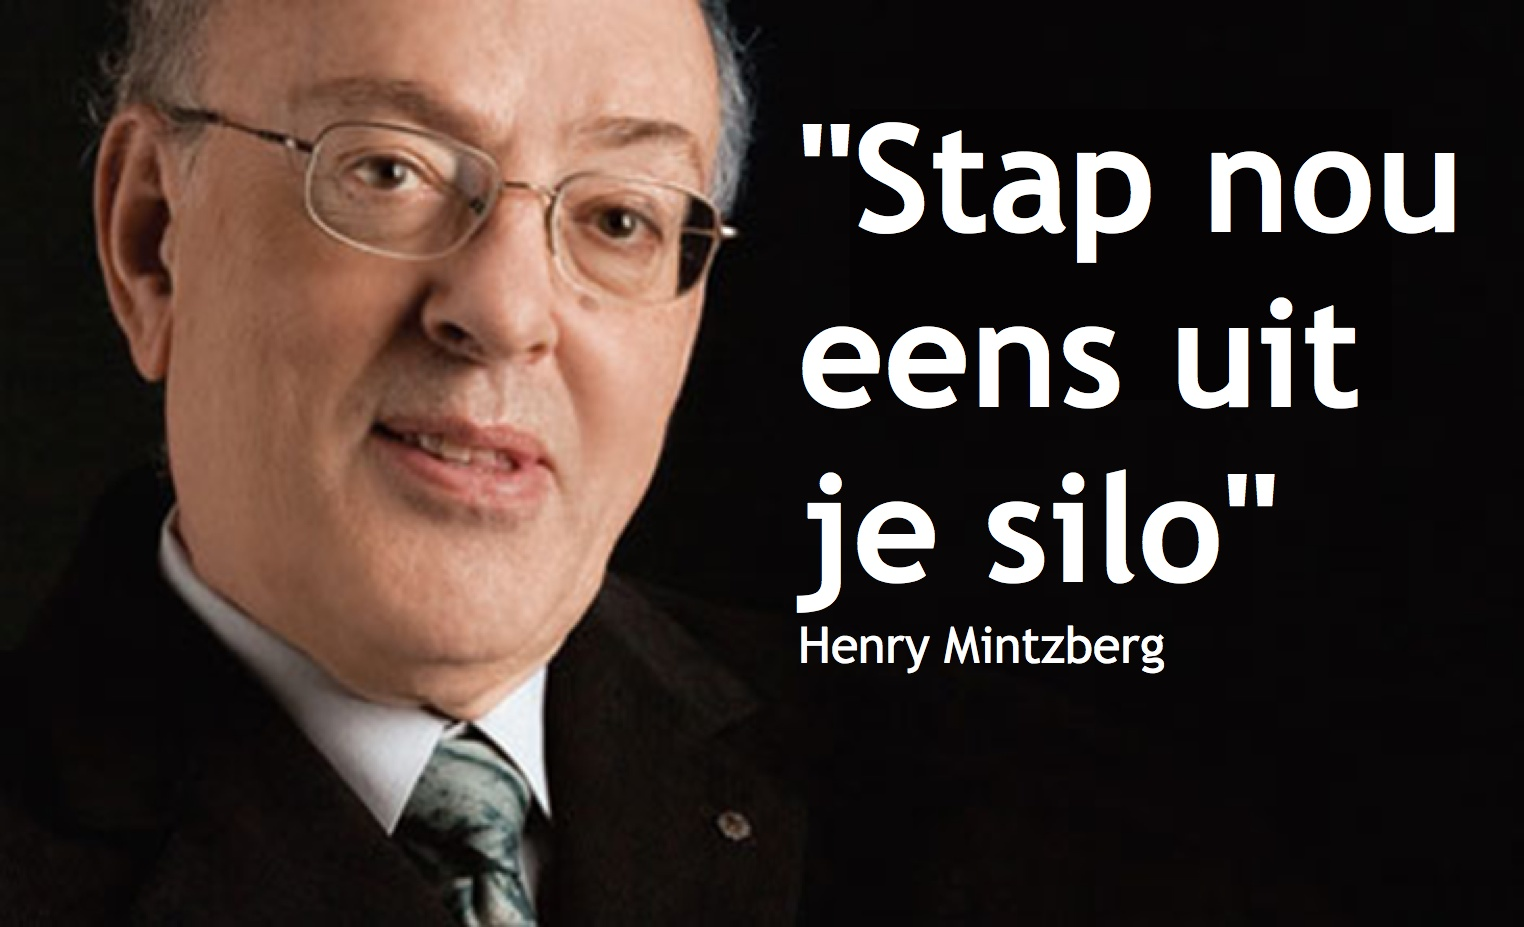 henry mintzberg Henry mintzberg is an internationally renowned academic, author and researcher famous management theories of him are the theory of the 10 managerial roles and the 5p's of strategy read more about his biography, quotes, publications and books.